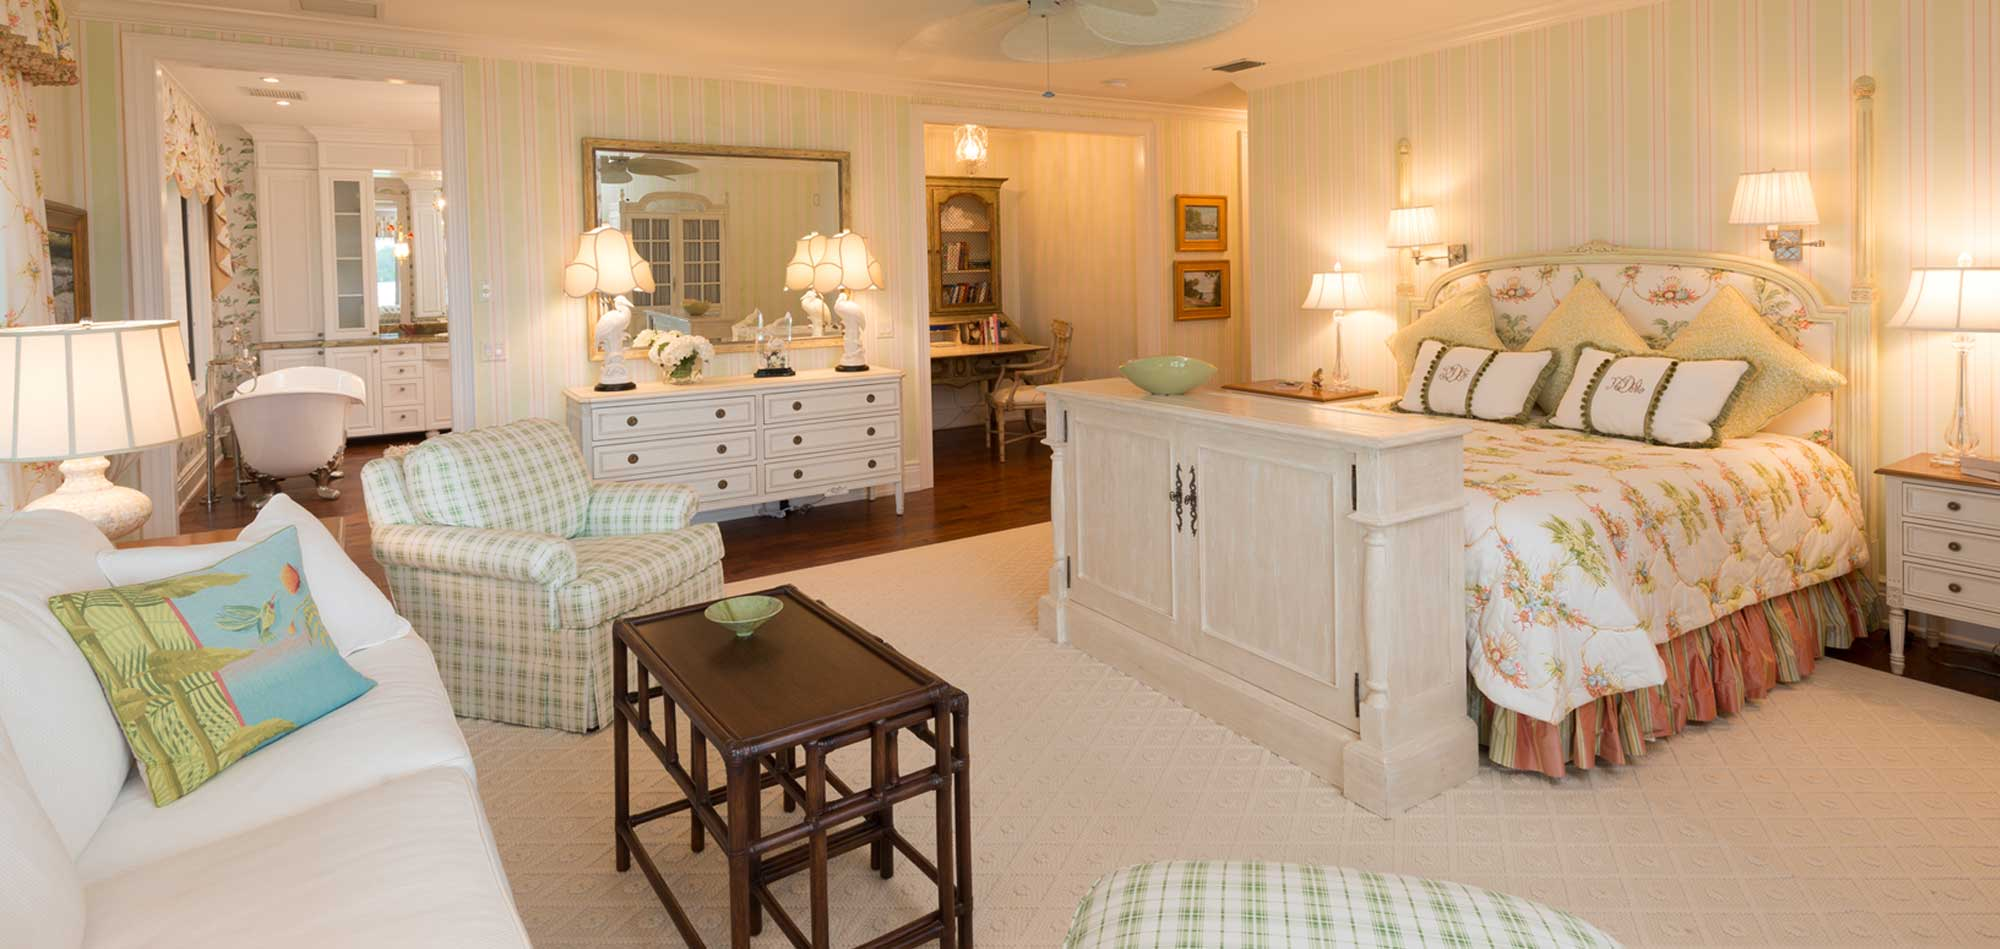 MKID Interior Design Services Near Sarasota FL